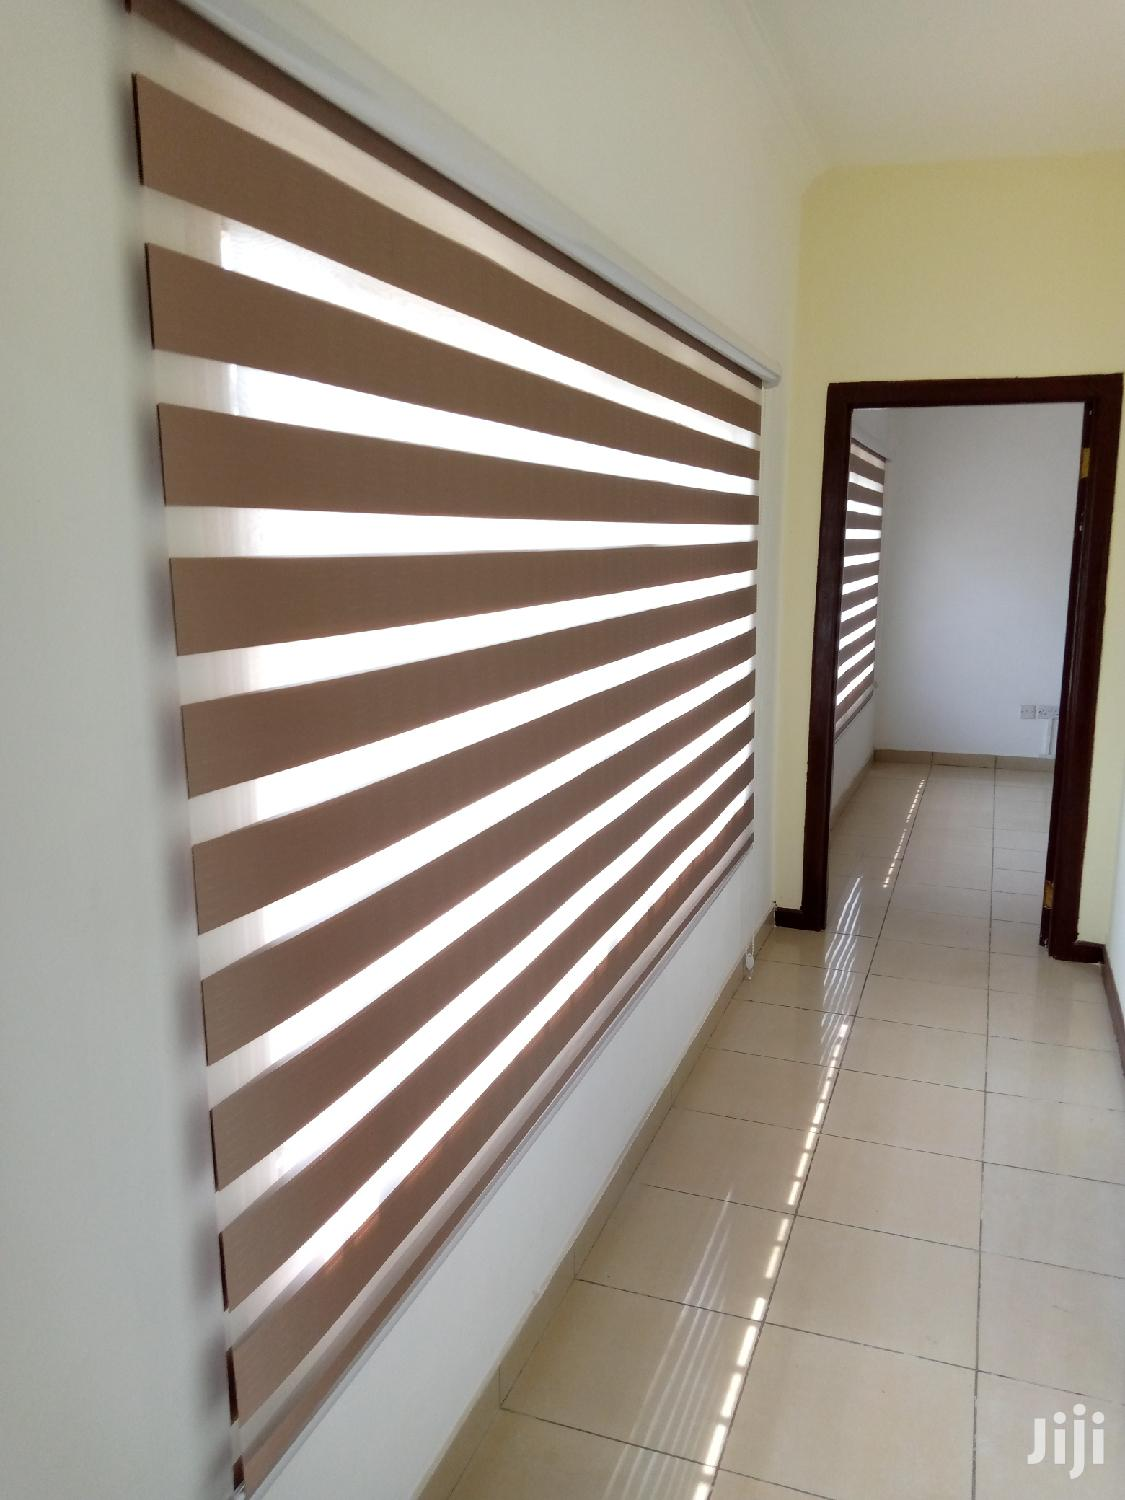 Classy Zebra Blinds | Home Accessories for sale in Kokomlemle, Greater Accra, Ghana